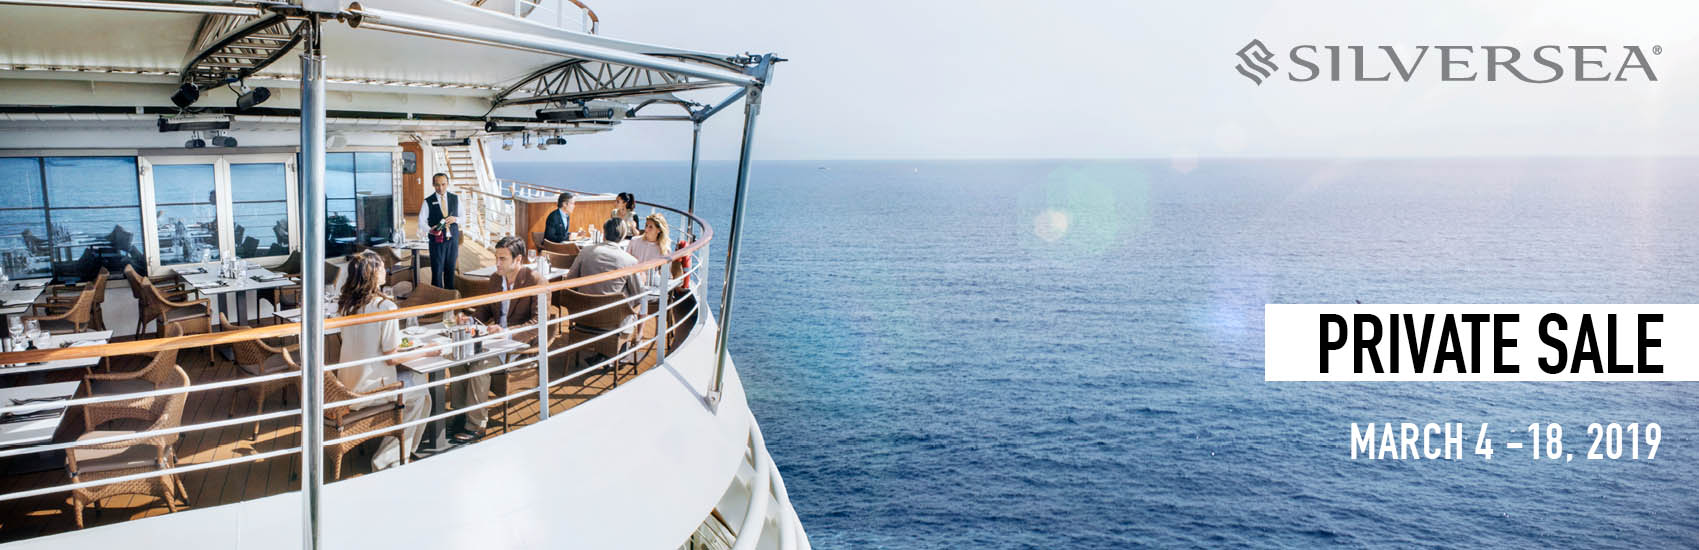 Silversea Private Sale 0